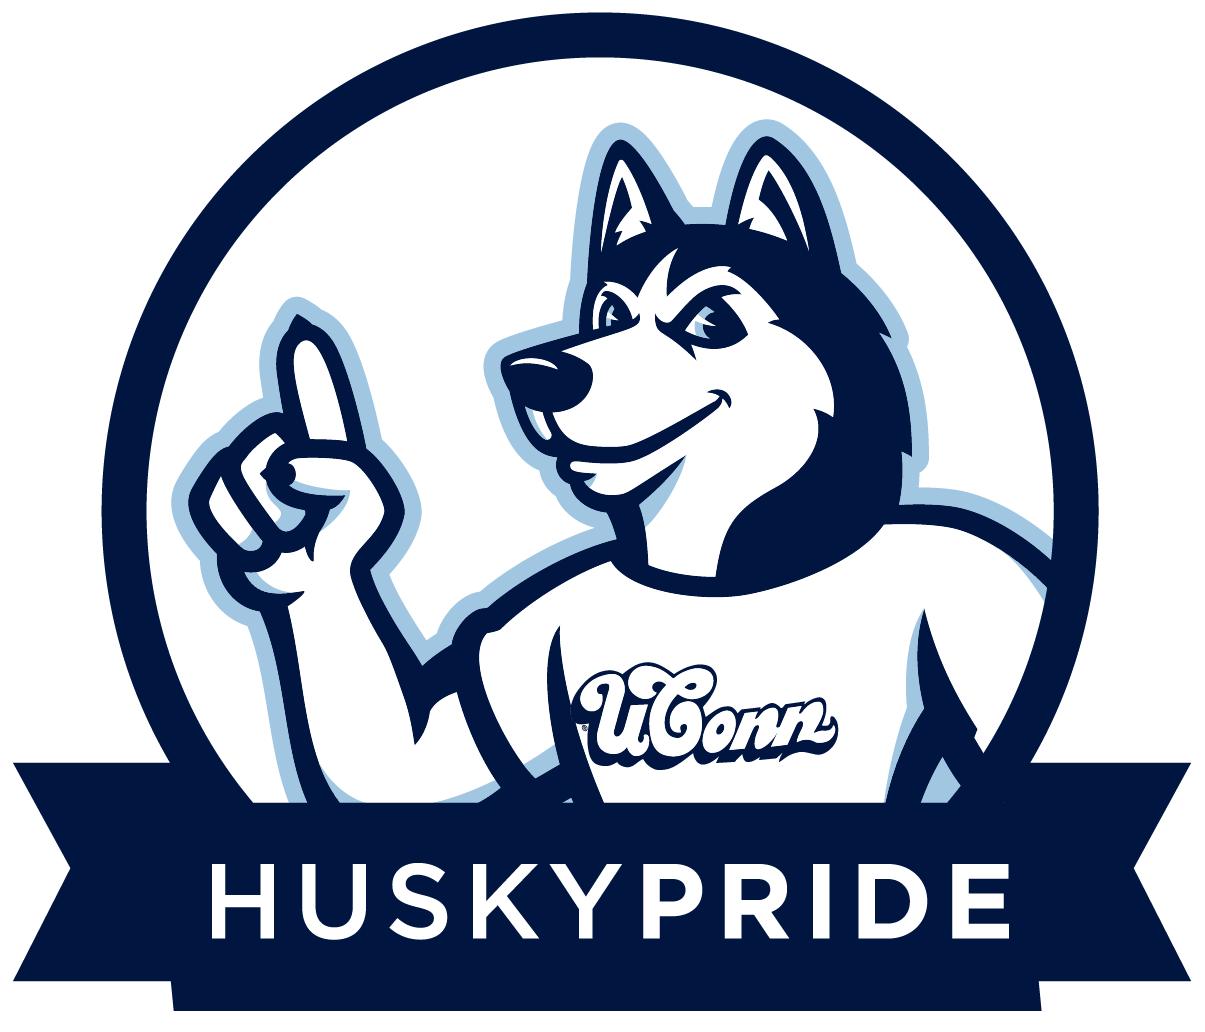 Husky Pride with Jonathan the Husky mascot badge